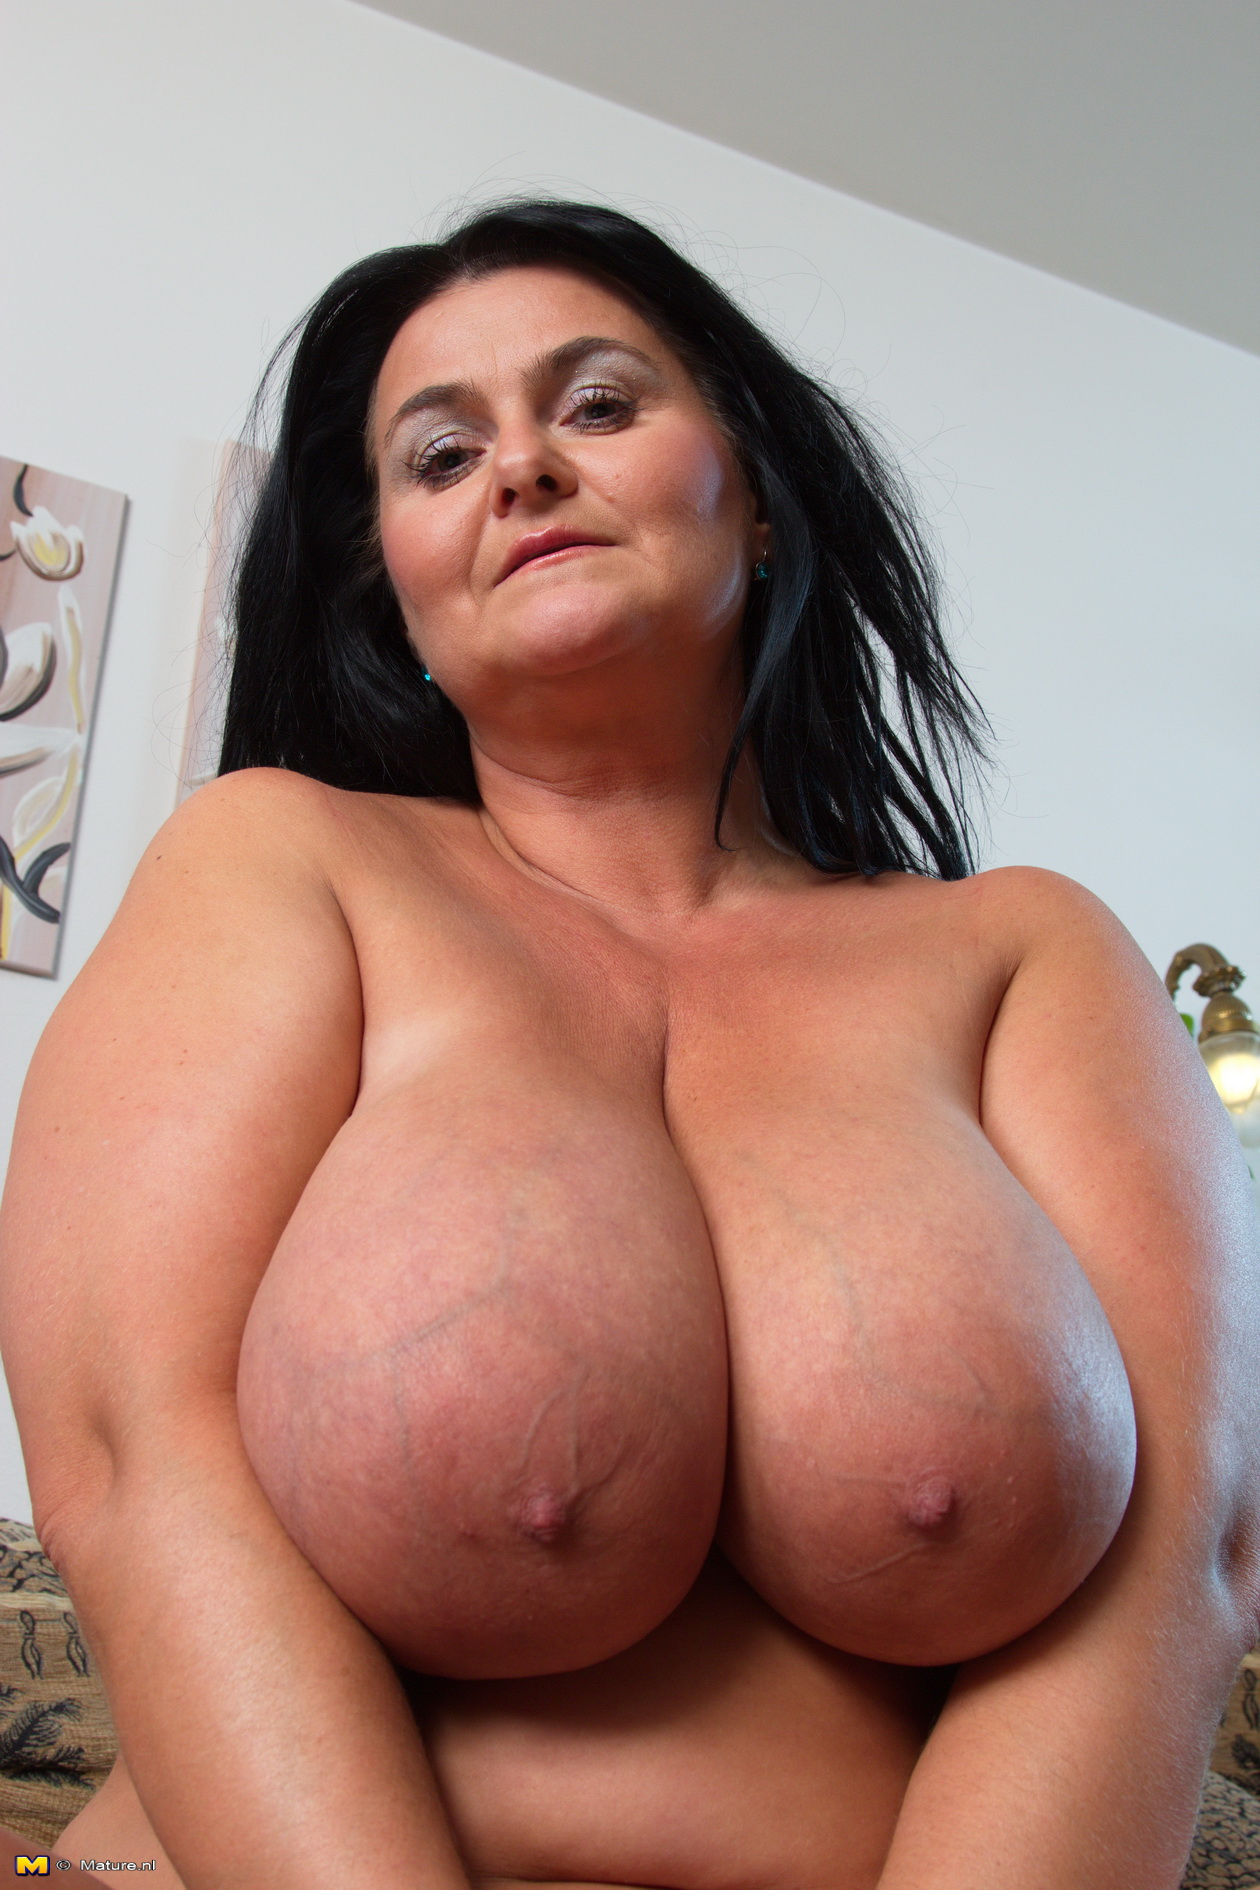 Mature women with large breast